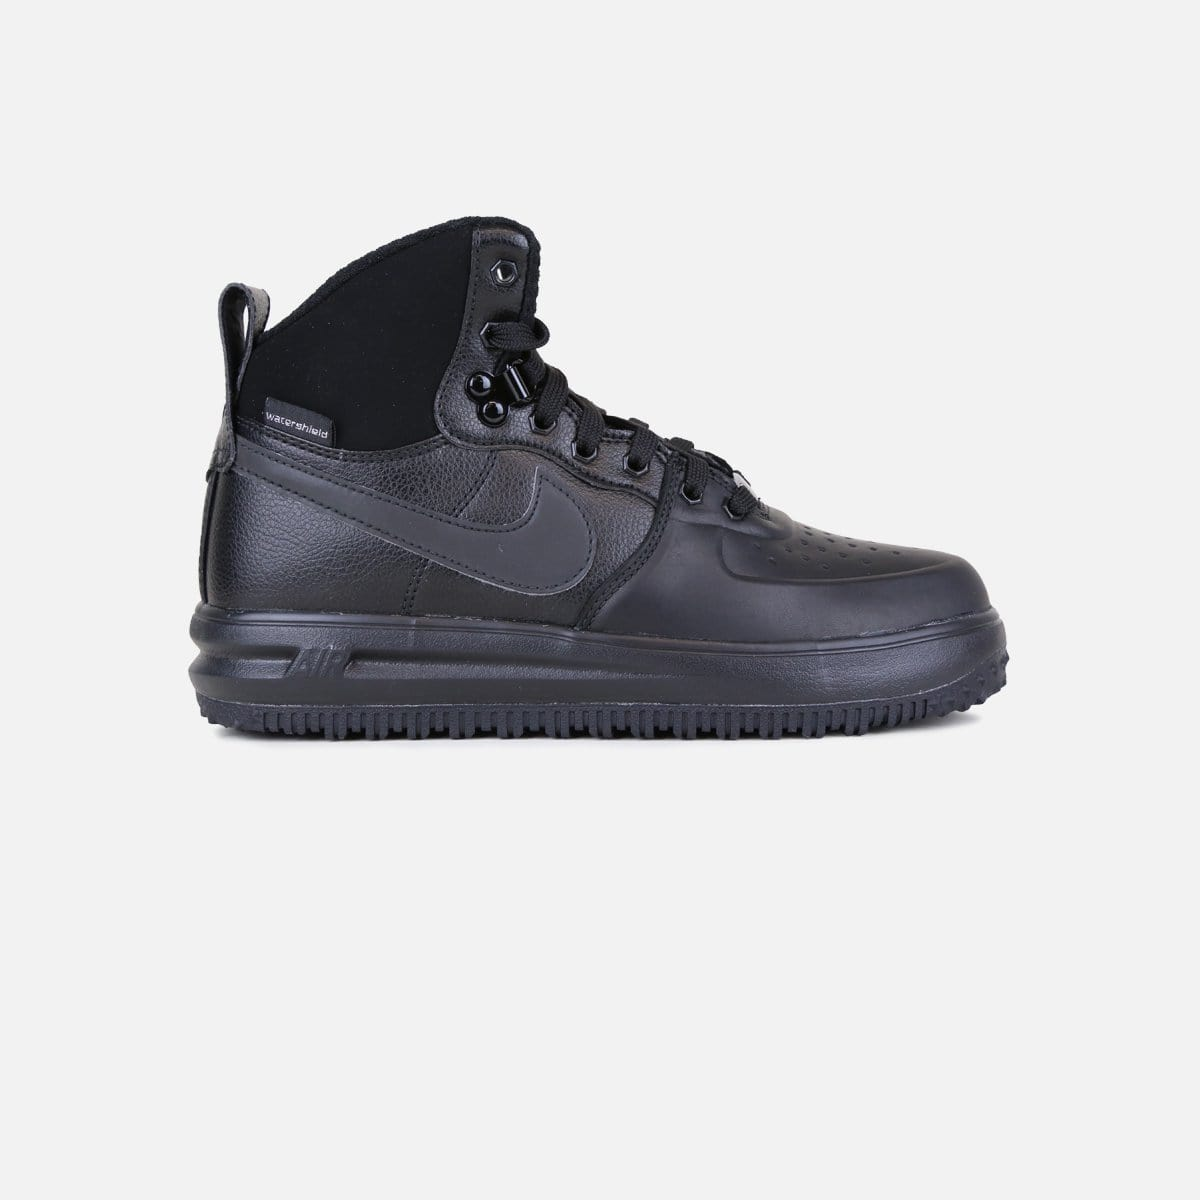 Nike Lunar Force 1 Sneakerboot Grade-School (Black/Black)